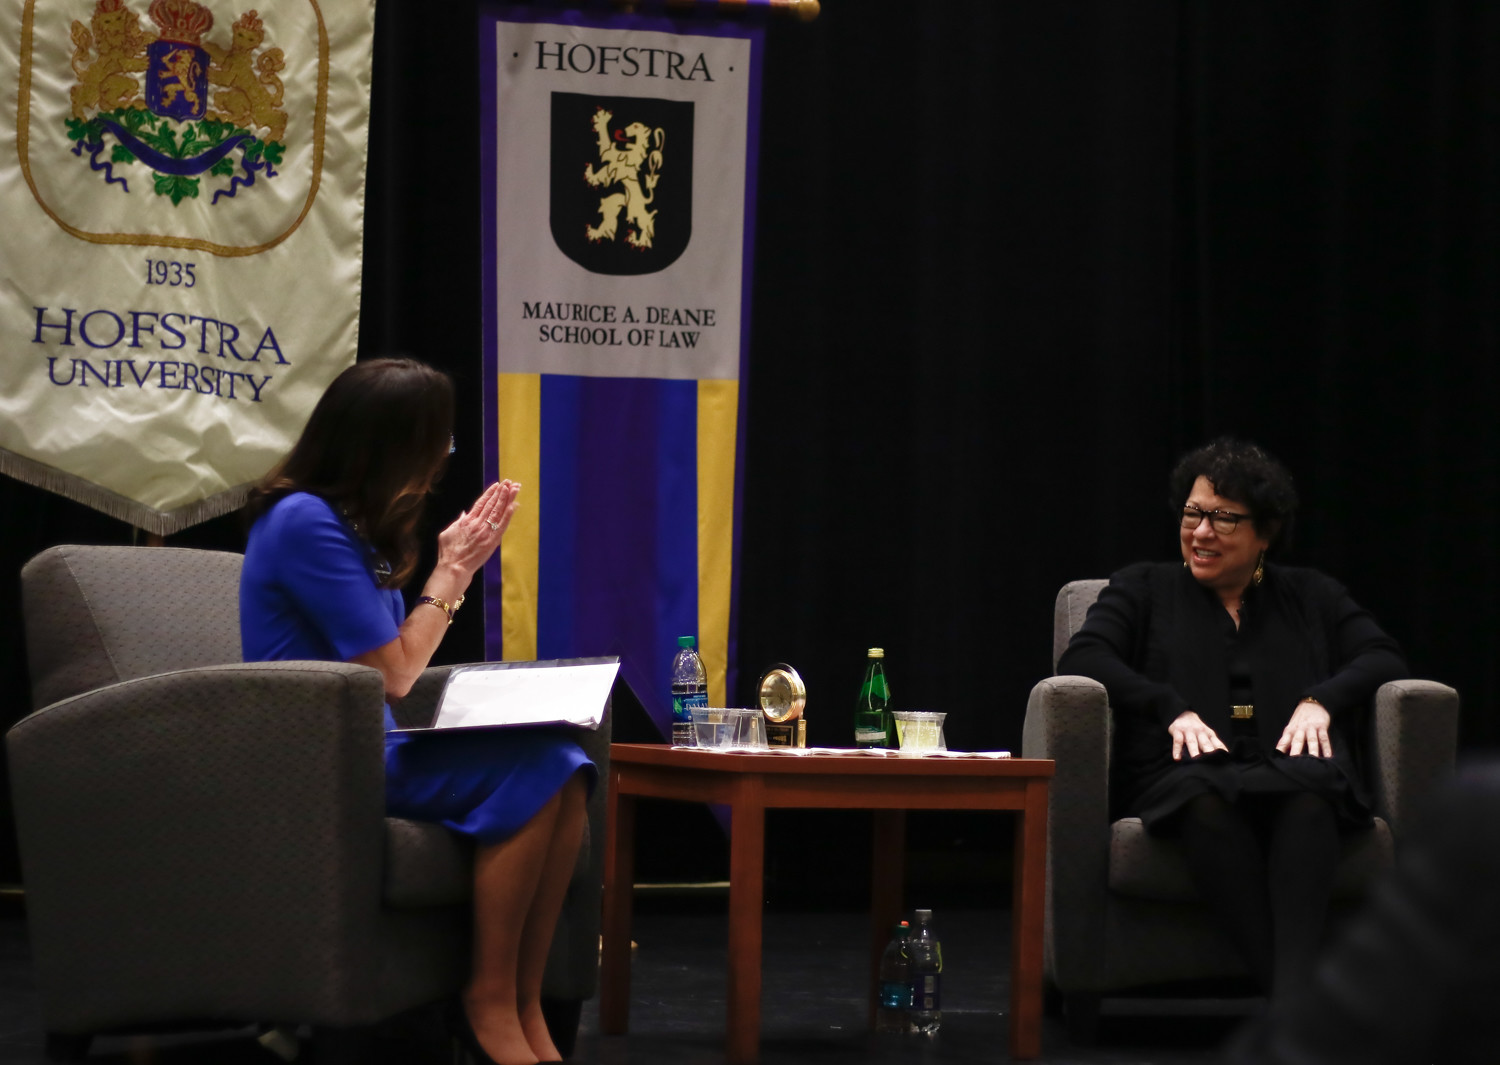 Judge A. Gail Prudenti, Hofstra Law's dean, asked Sotomayor questions during the first half hour of Sotomayor's hour-long visit.